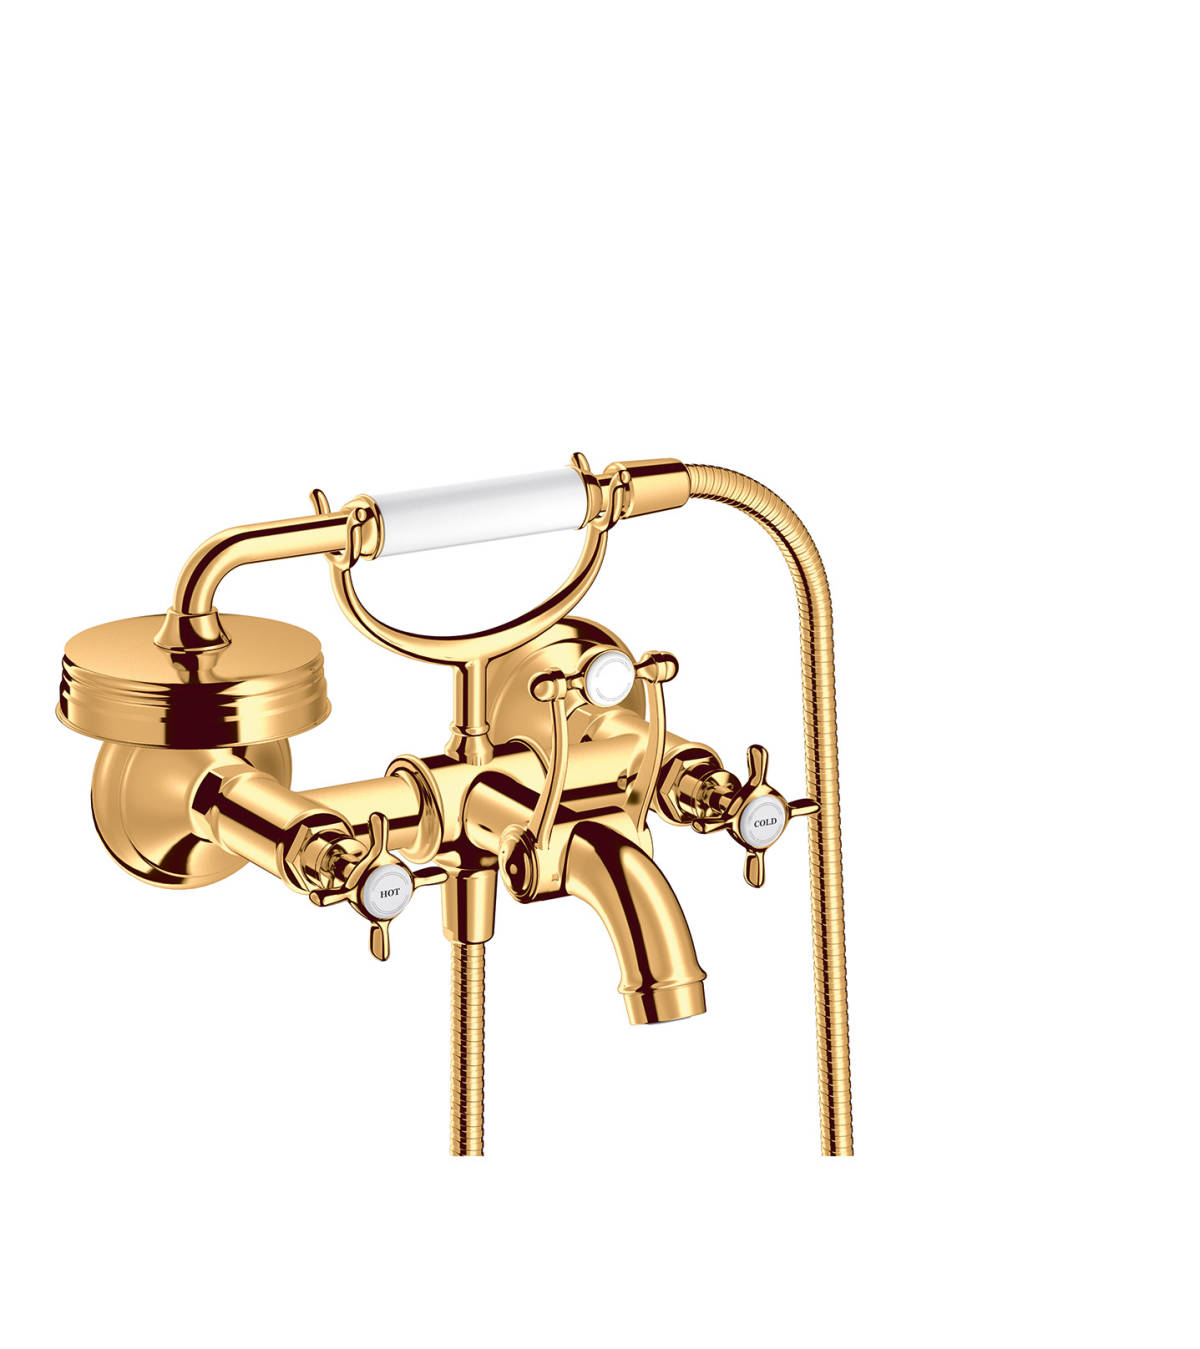 2-handle bath mixer for exposed installation with cross handles, Polished Gold Optic, 16540990